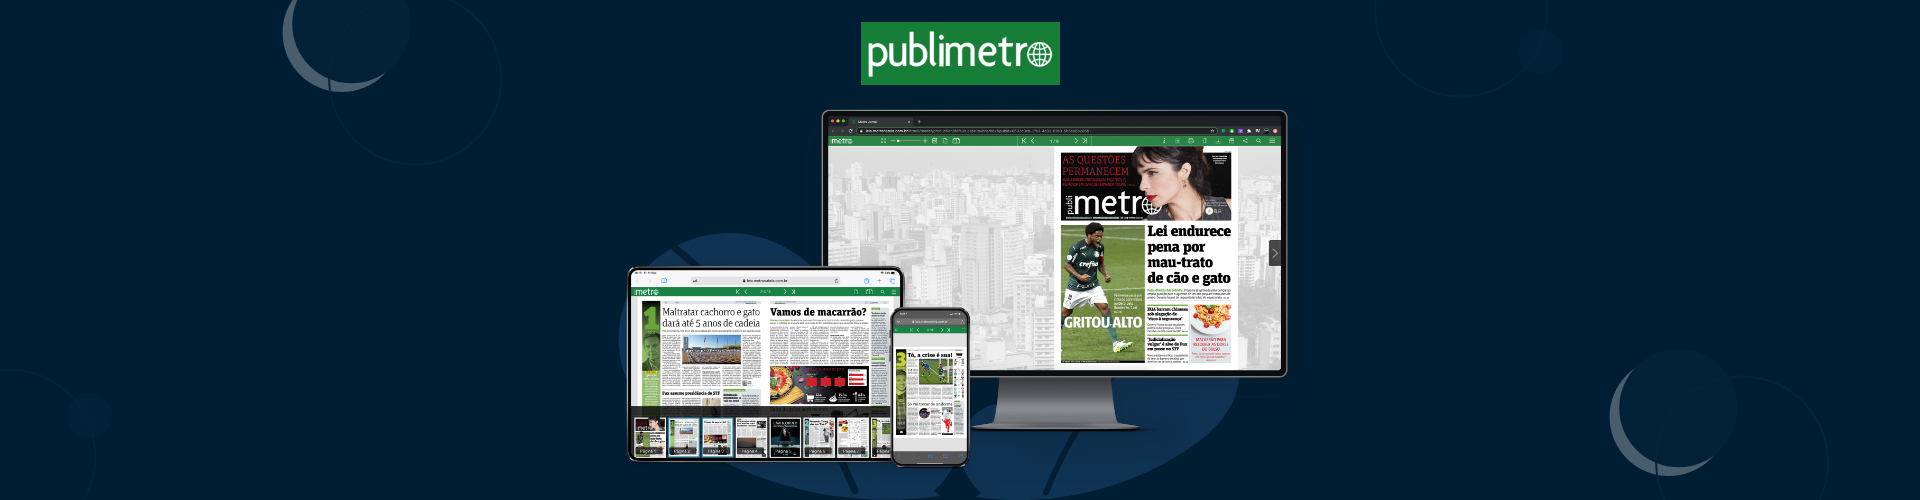 Image of PageSuite and Metro Jornal São Paulo Collaborate on New Digital Strategy